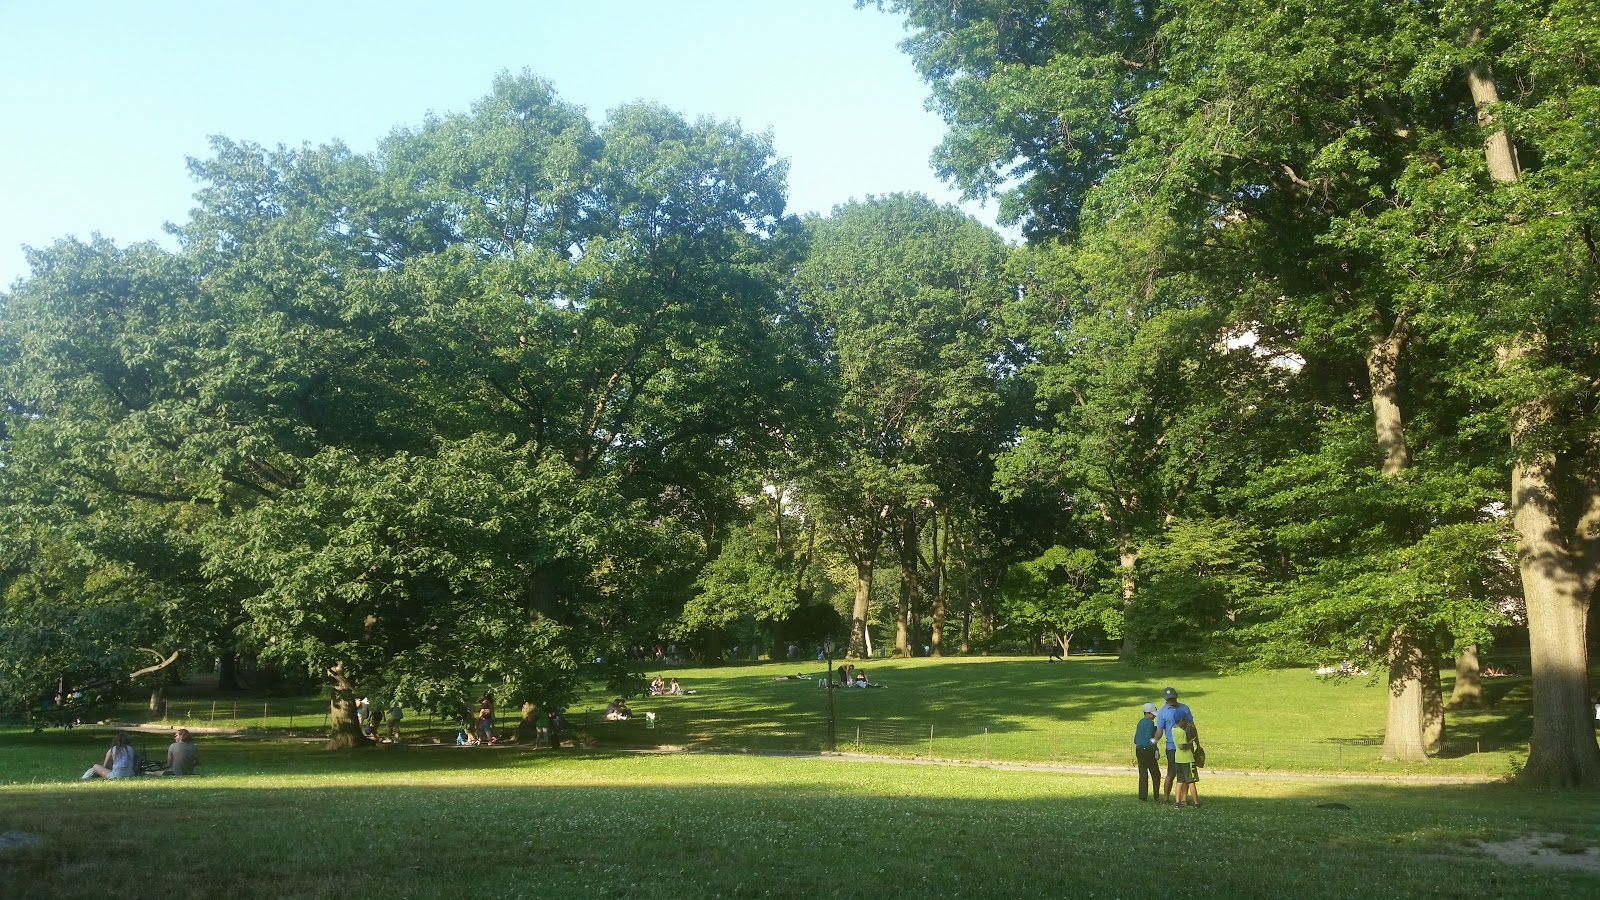 Relaxing in Central Park